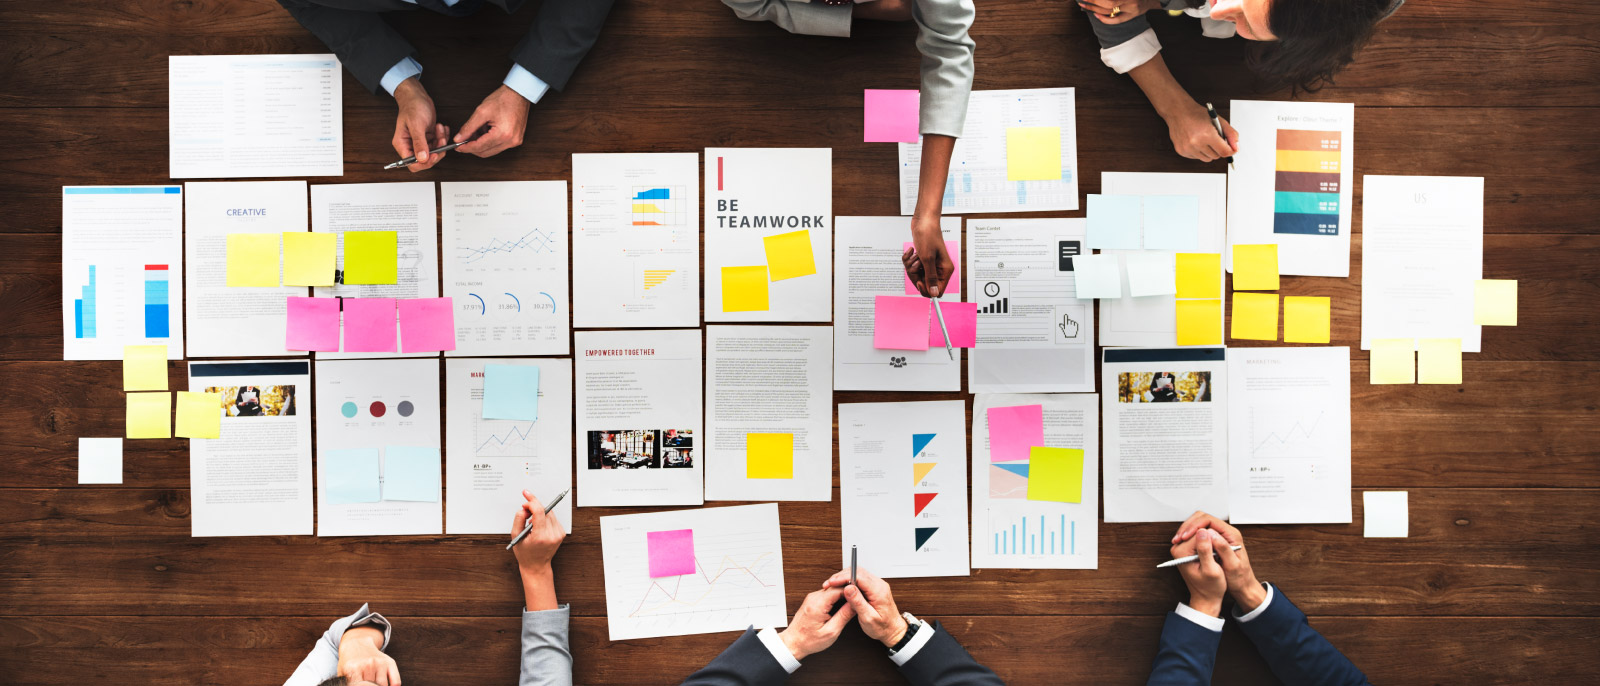 project management firms Product managers vs project managers product management software and project management software are entirely different tools — each designed for a different type of role, to help.